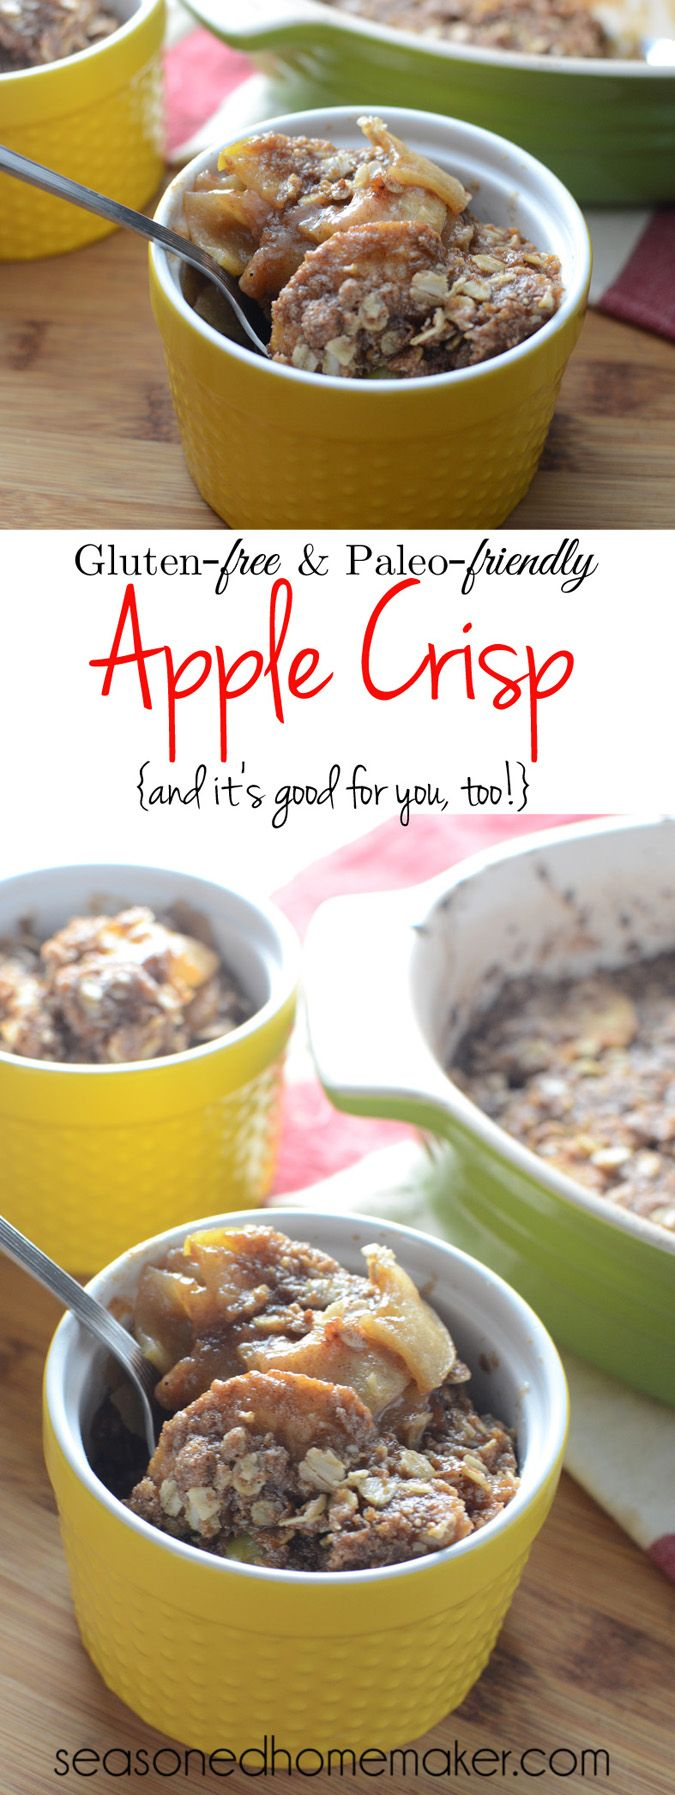 1000 images about gluten free recipes on pinterest for Easy apple dessert recipes with few ingredients